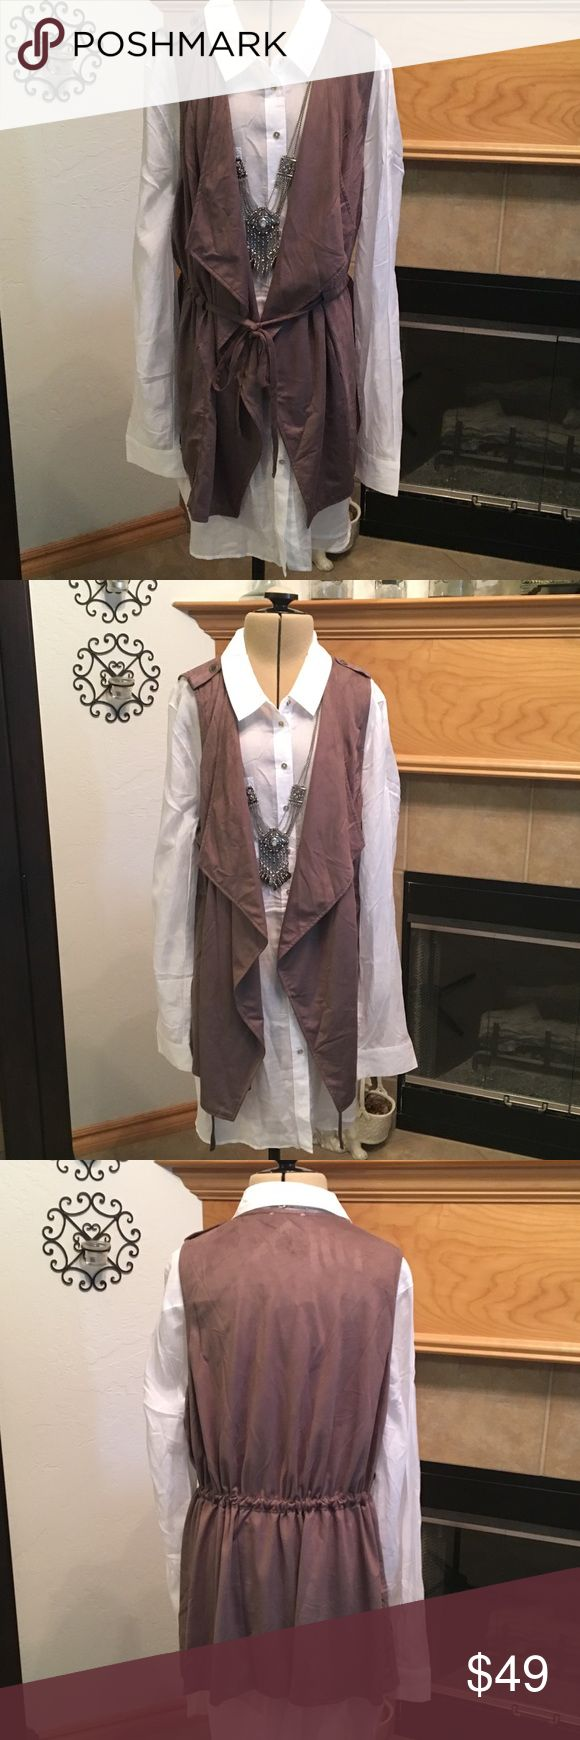 """SLEEVELESS SUEDE OPEN FRONT VEST WITH DRAW STRING SLEEVELESS SUDEDE OPEN VEST WITH DRAW STRING TIE-55% COTTON-45% POLYESTER-VERY SOFT-DRAP FRONT-SMALL-SHOULDERS ARE ABOUT 12""""-ARMHOLE DISTANCE IS ABOUT 18""""-LENGTH IS ABOUT 27 1/2""""-MEDIUM-SHOULDERS IS ABOUT 12 1/2""""-ARMHOLE DISTANCE IS ABOUT 20""""- 28""""-LARGE SHOULDERS IS ABOUT 13""""-ARMHOLE DISTANCE IS ABOUT 20 1/2""""-LENGTH IS ABOUT 29""""THE COLOR IS CALLED RED BEAN BUT IT IS A LIGHT MOCA BROWN Umgee Jackets & Coats Vests"""